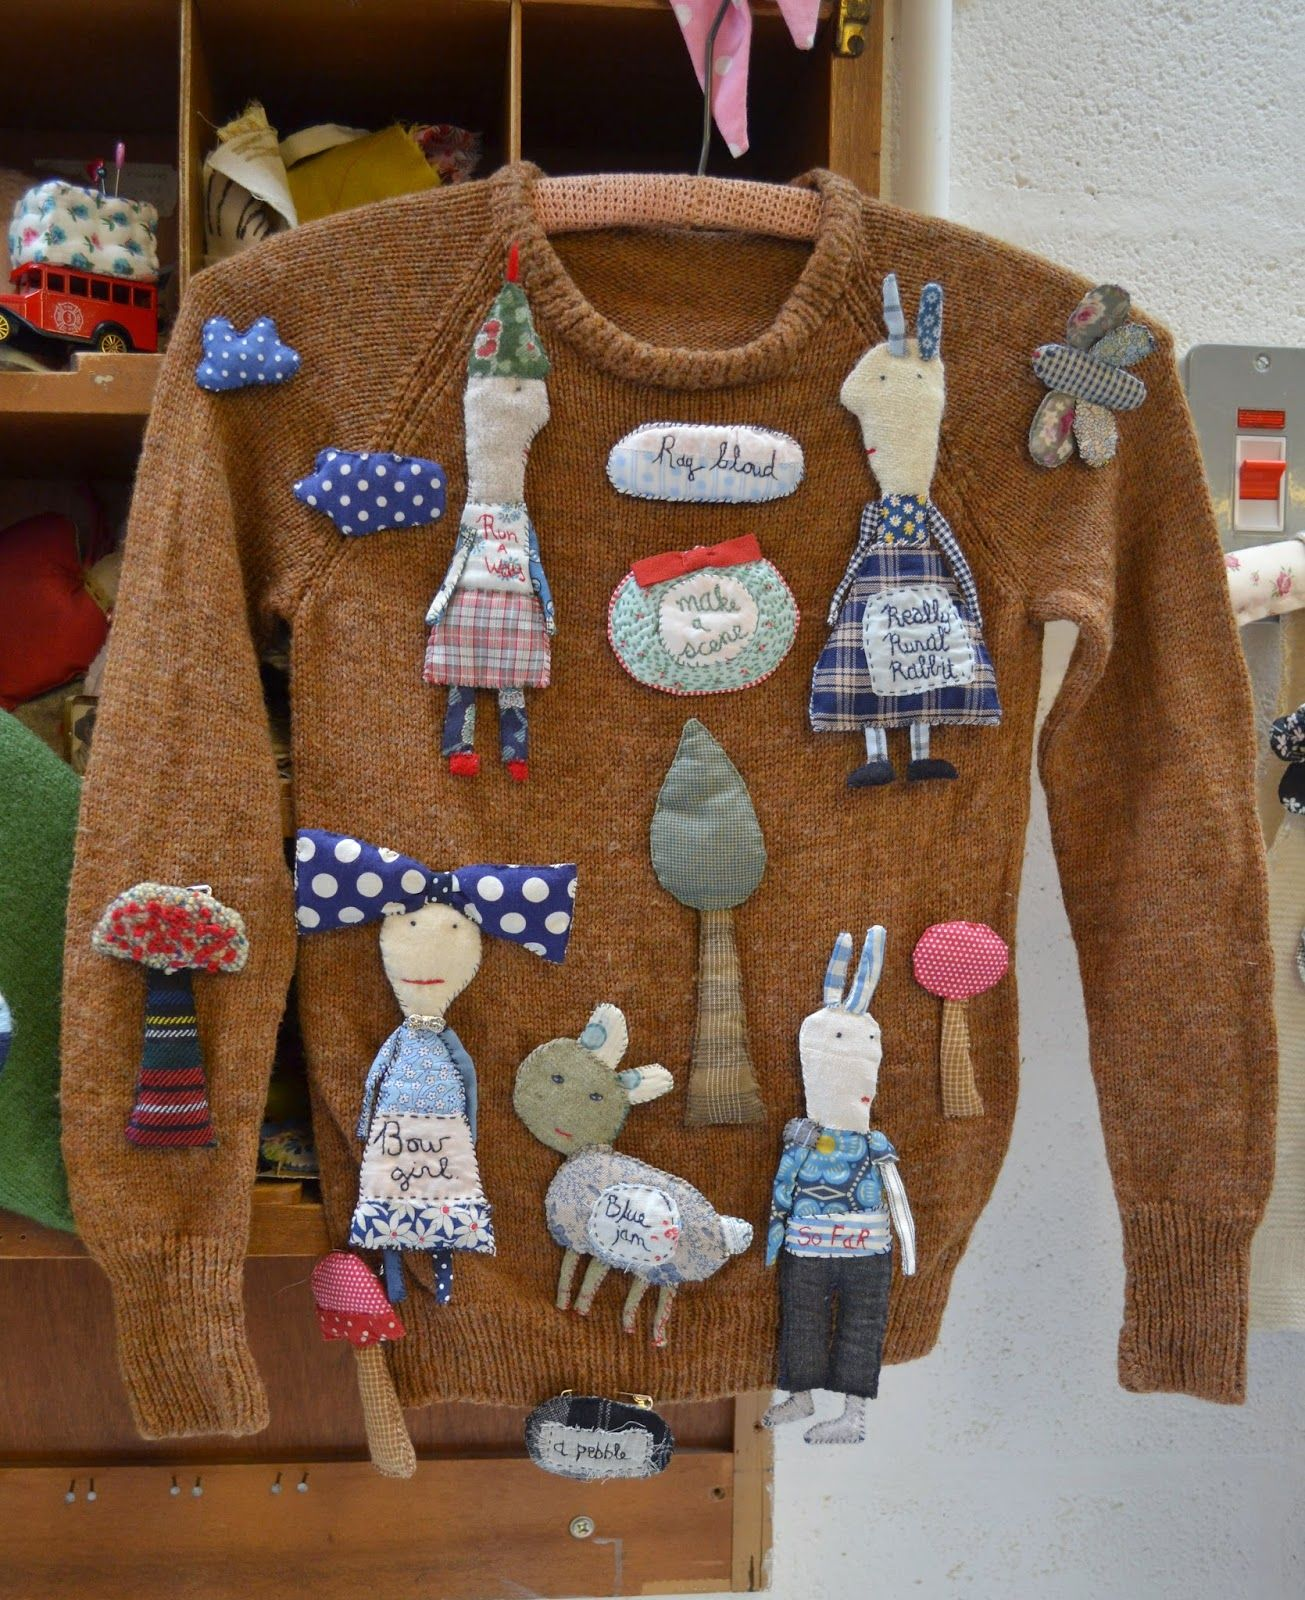 A cleaver way to display some handmade pins/brooches.